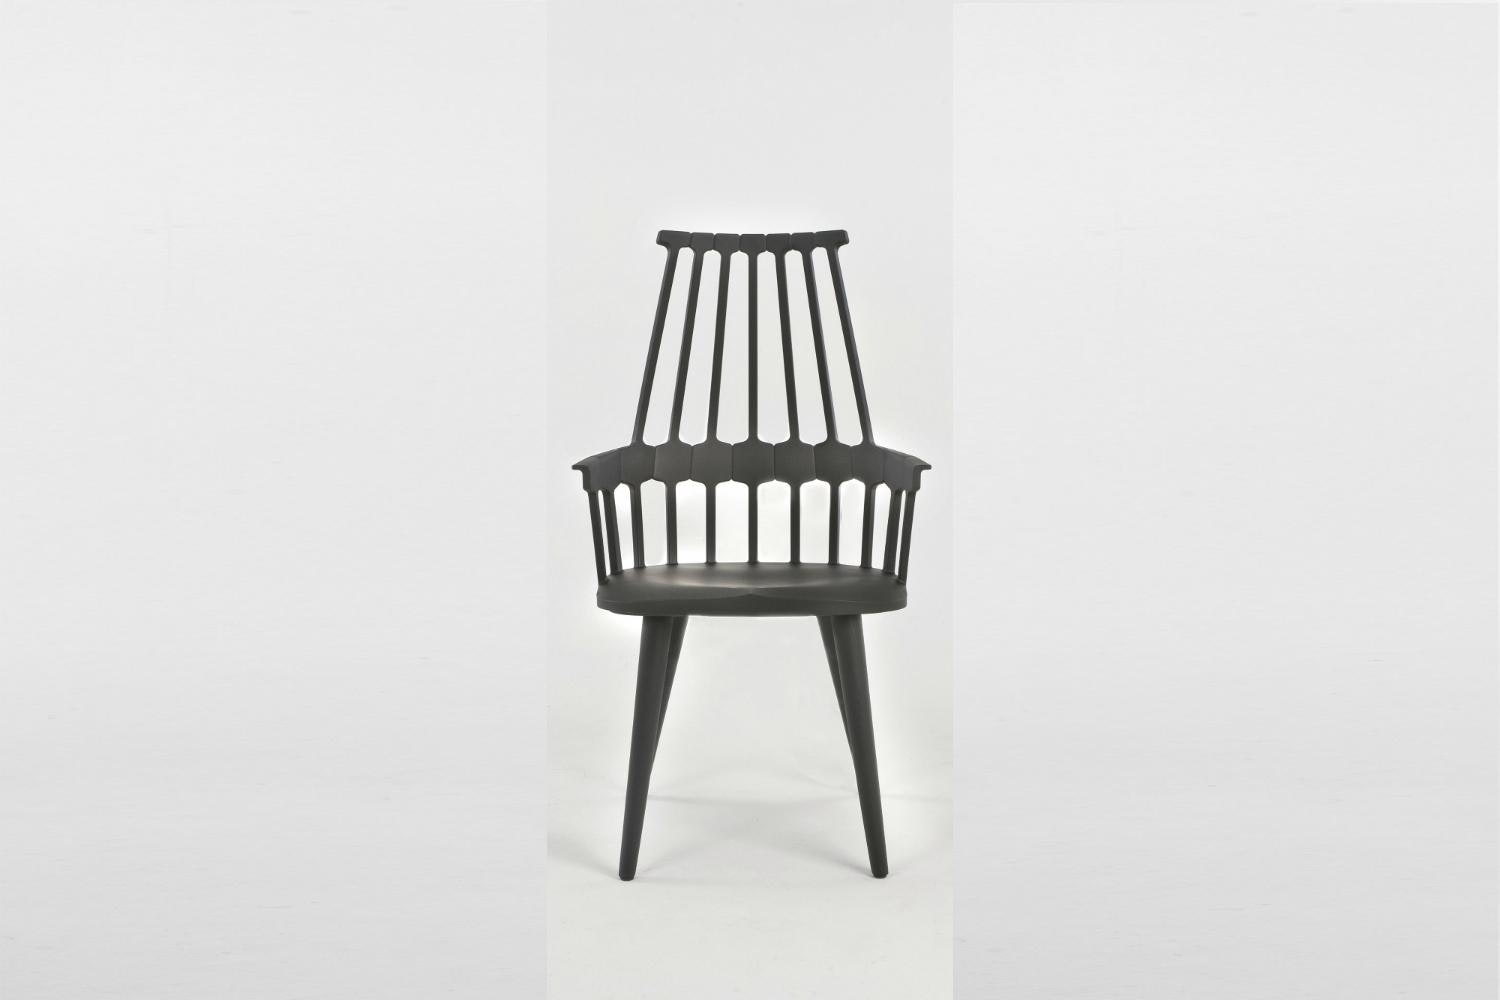 Comback Wood Chair by Patricia Urquiola for Kartell